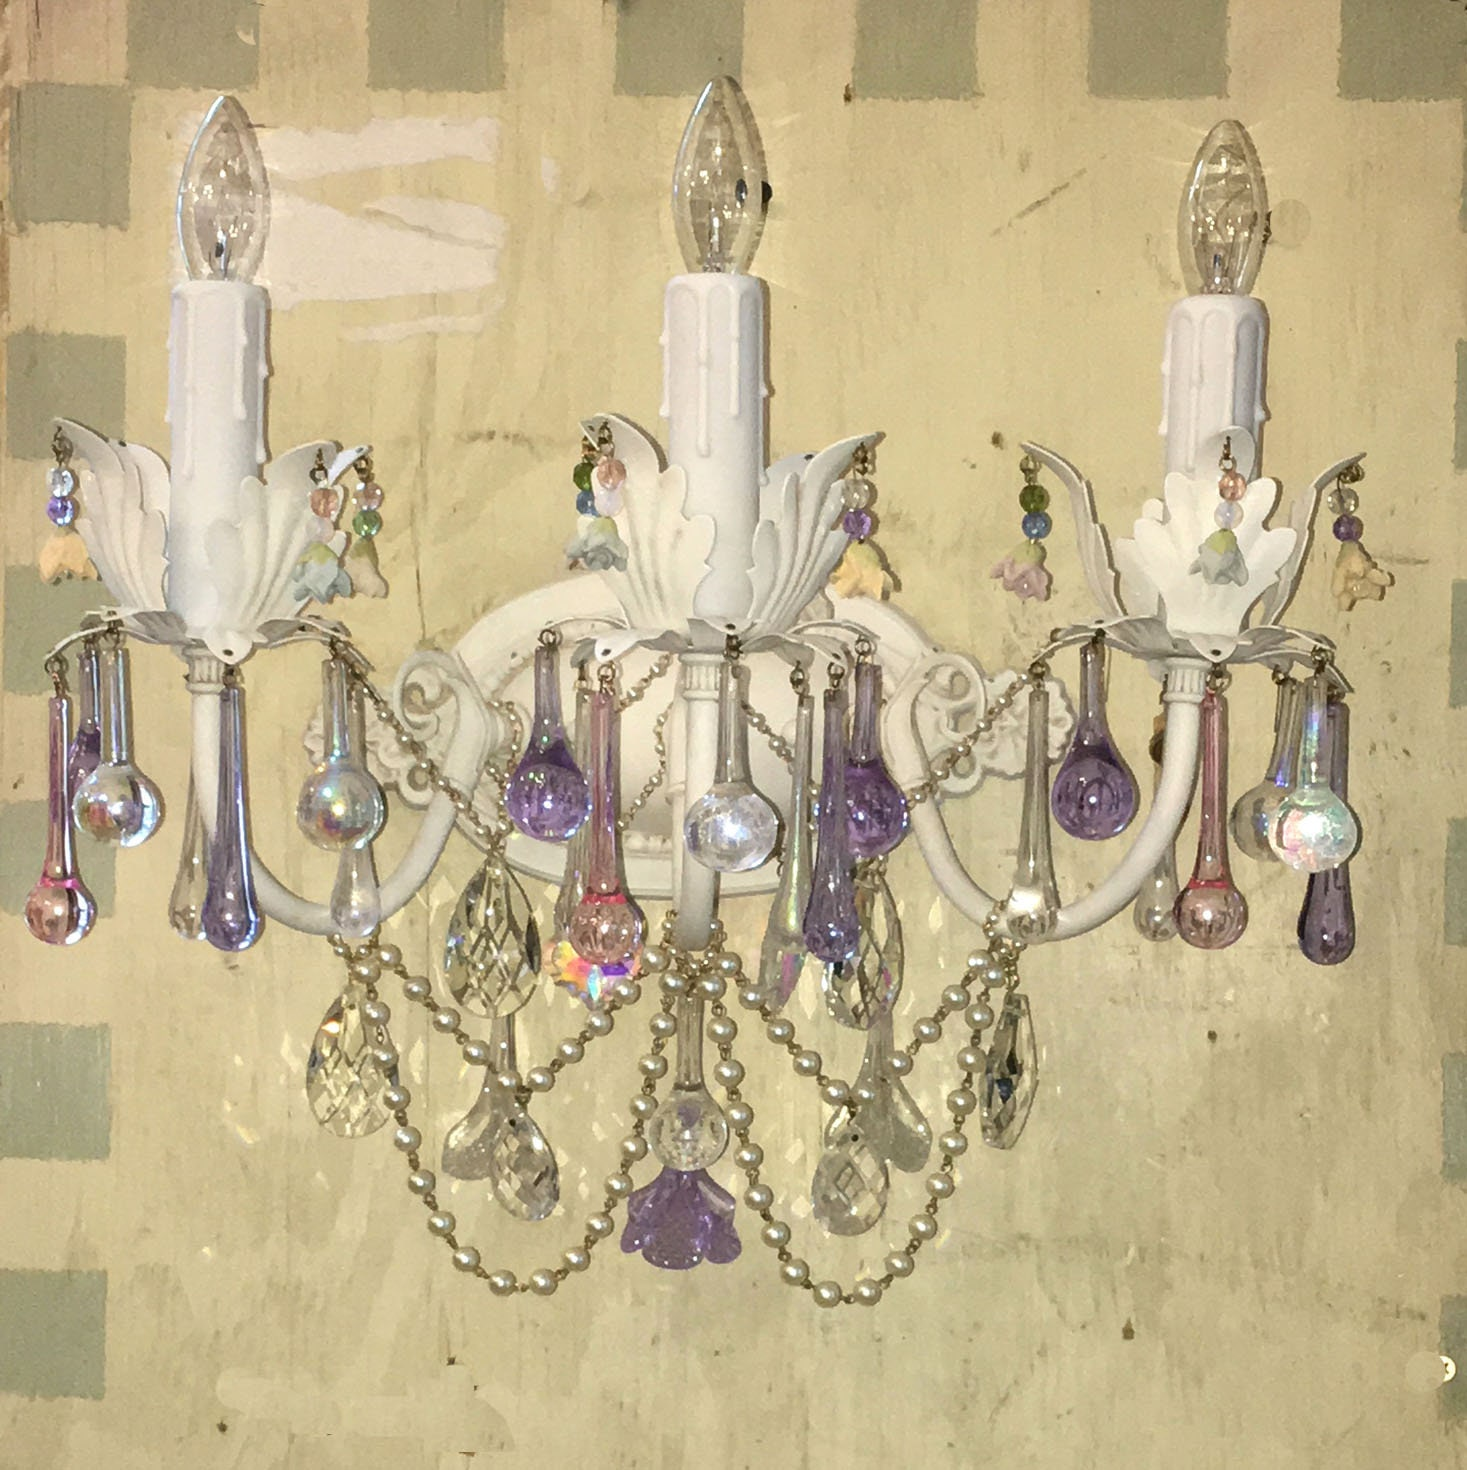 Sample Sale Shabby Chic 3 Light Electric Wall Sconce In Antique